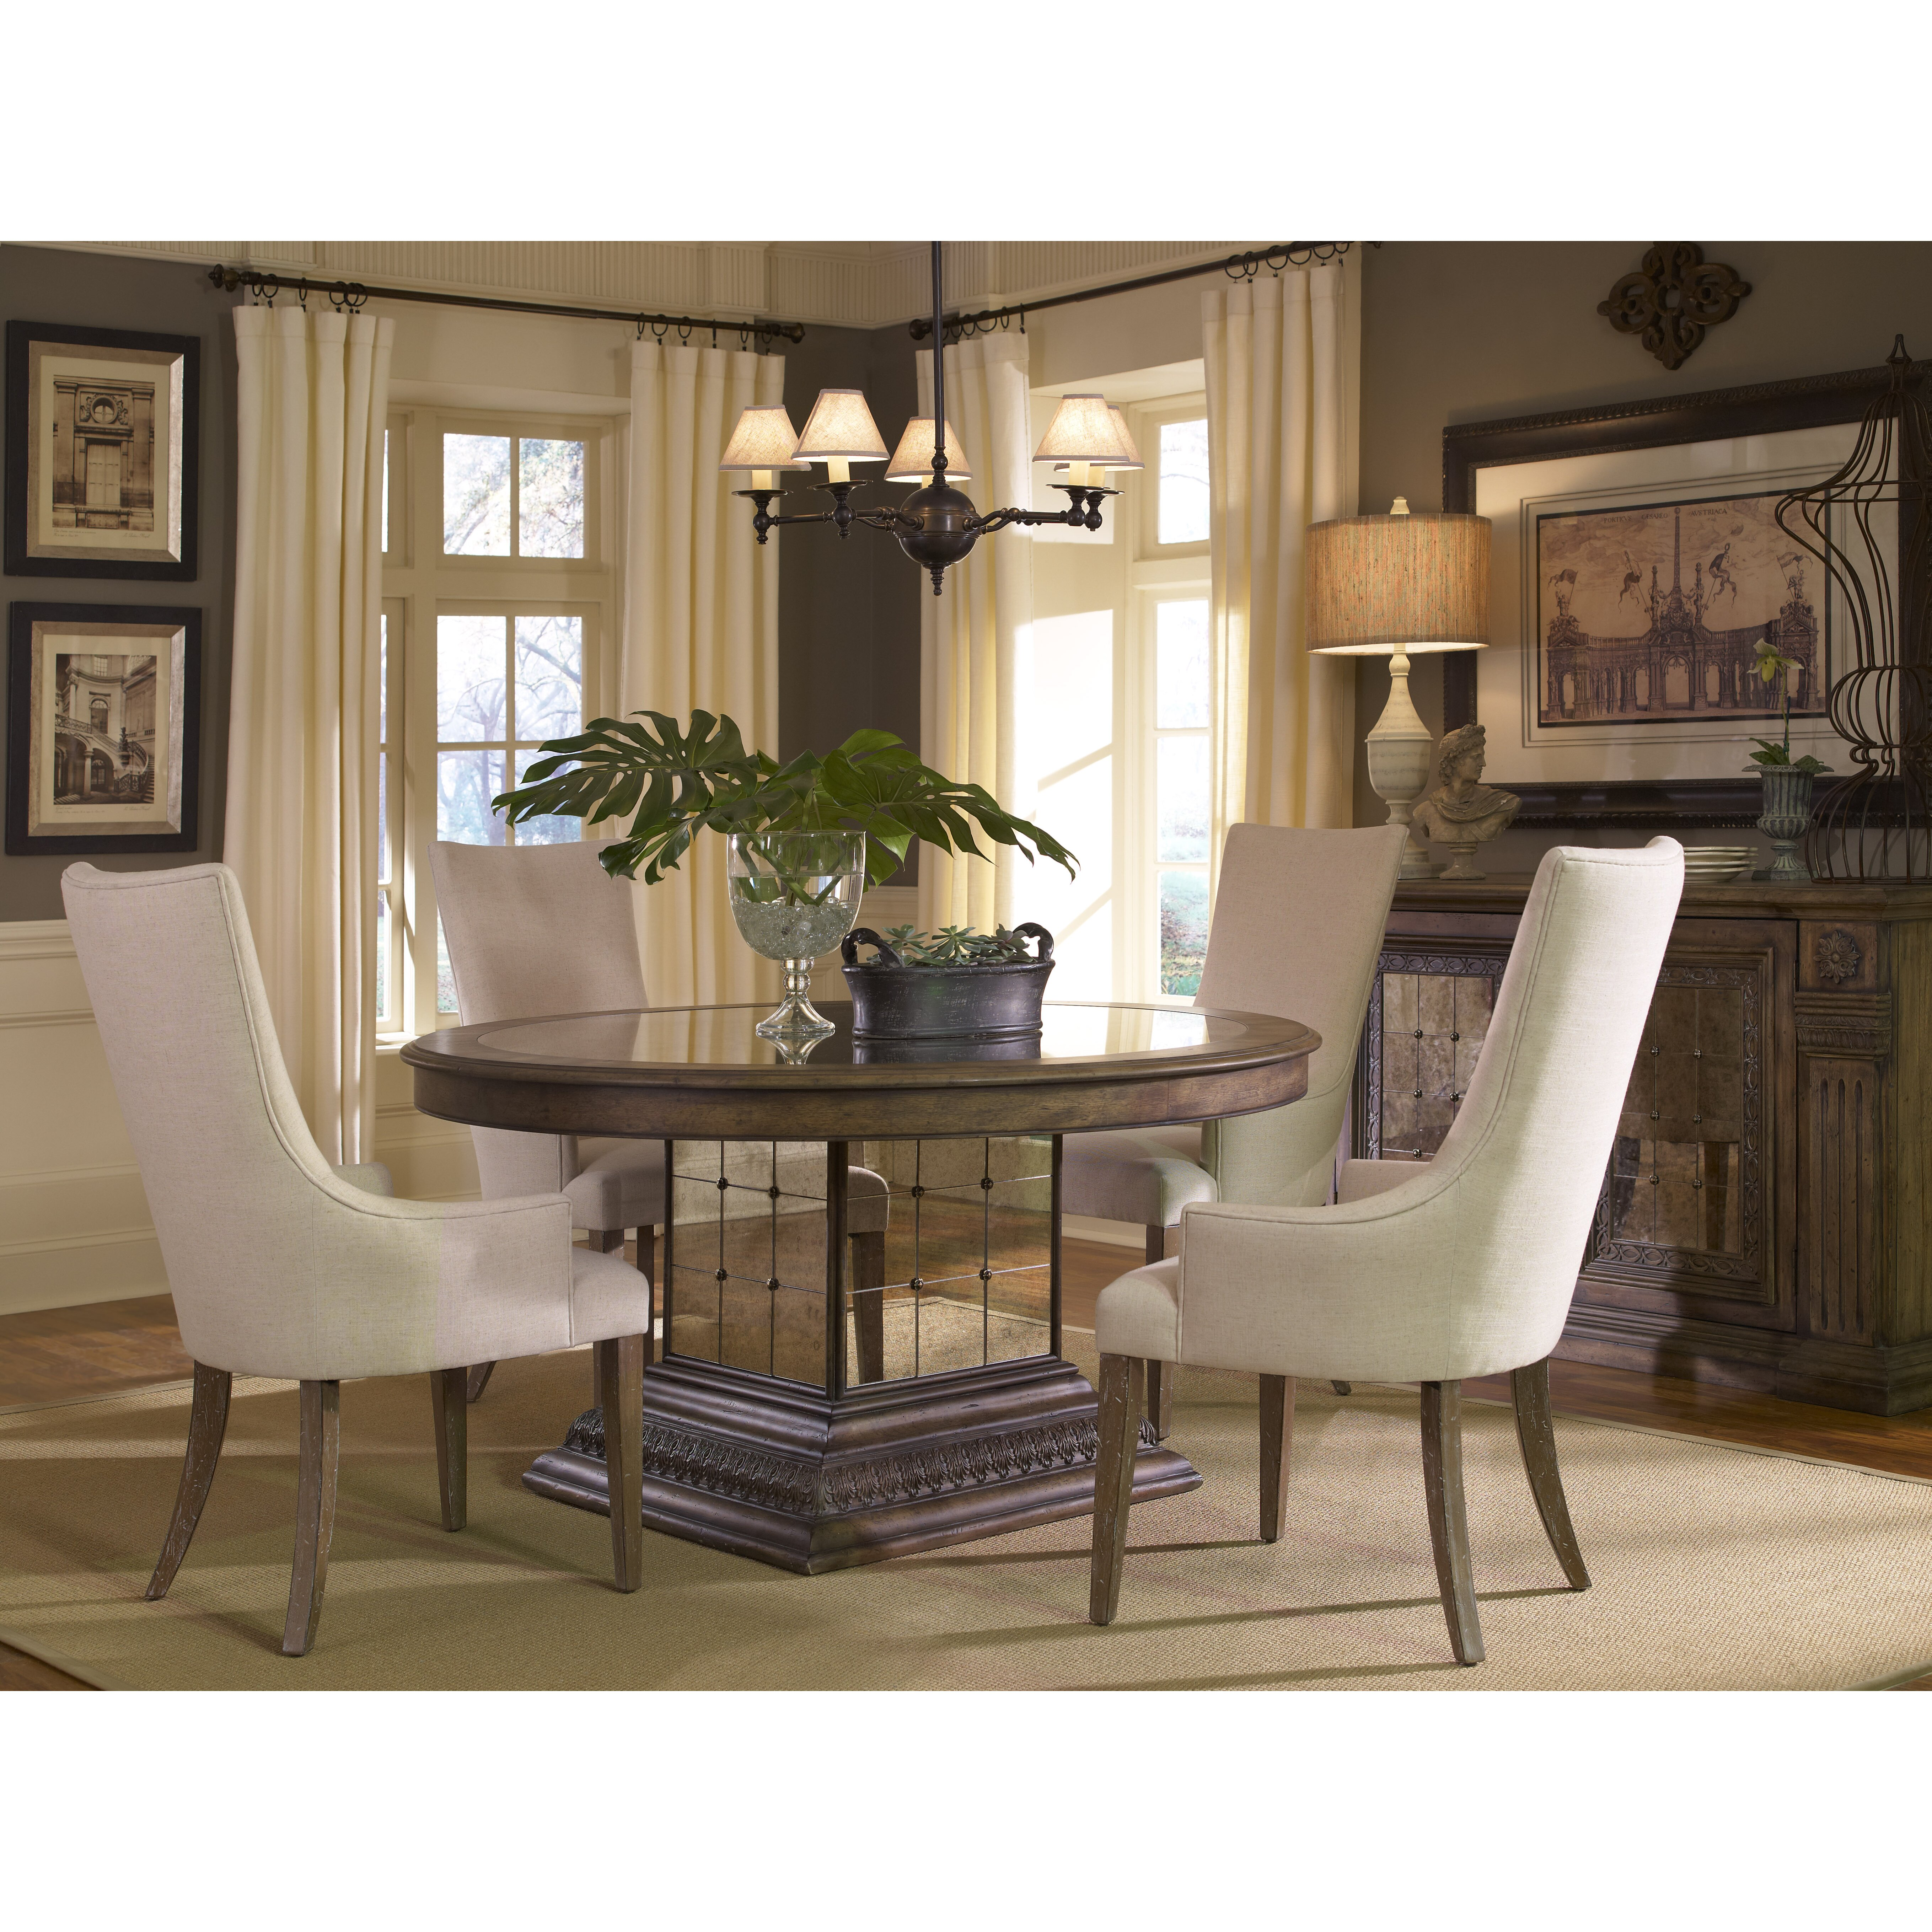 Accentrics by pulaski aphrodite 5 piece dining set reviews wayfair - Pulaski dining room ...